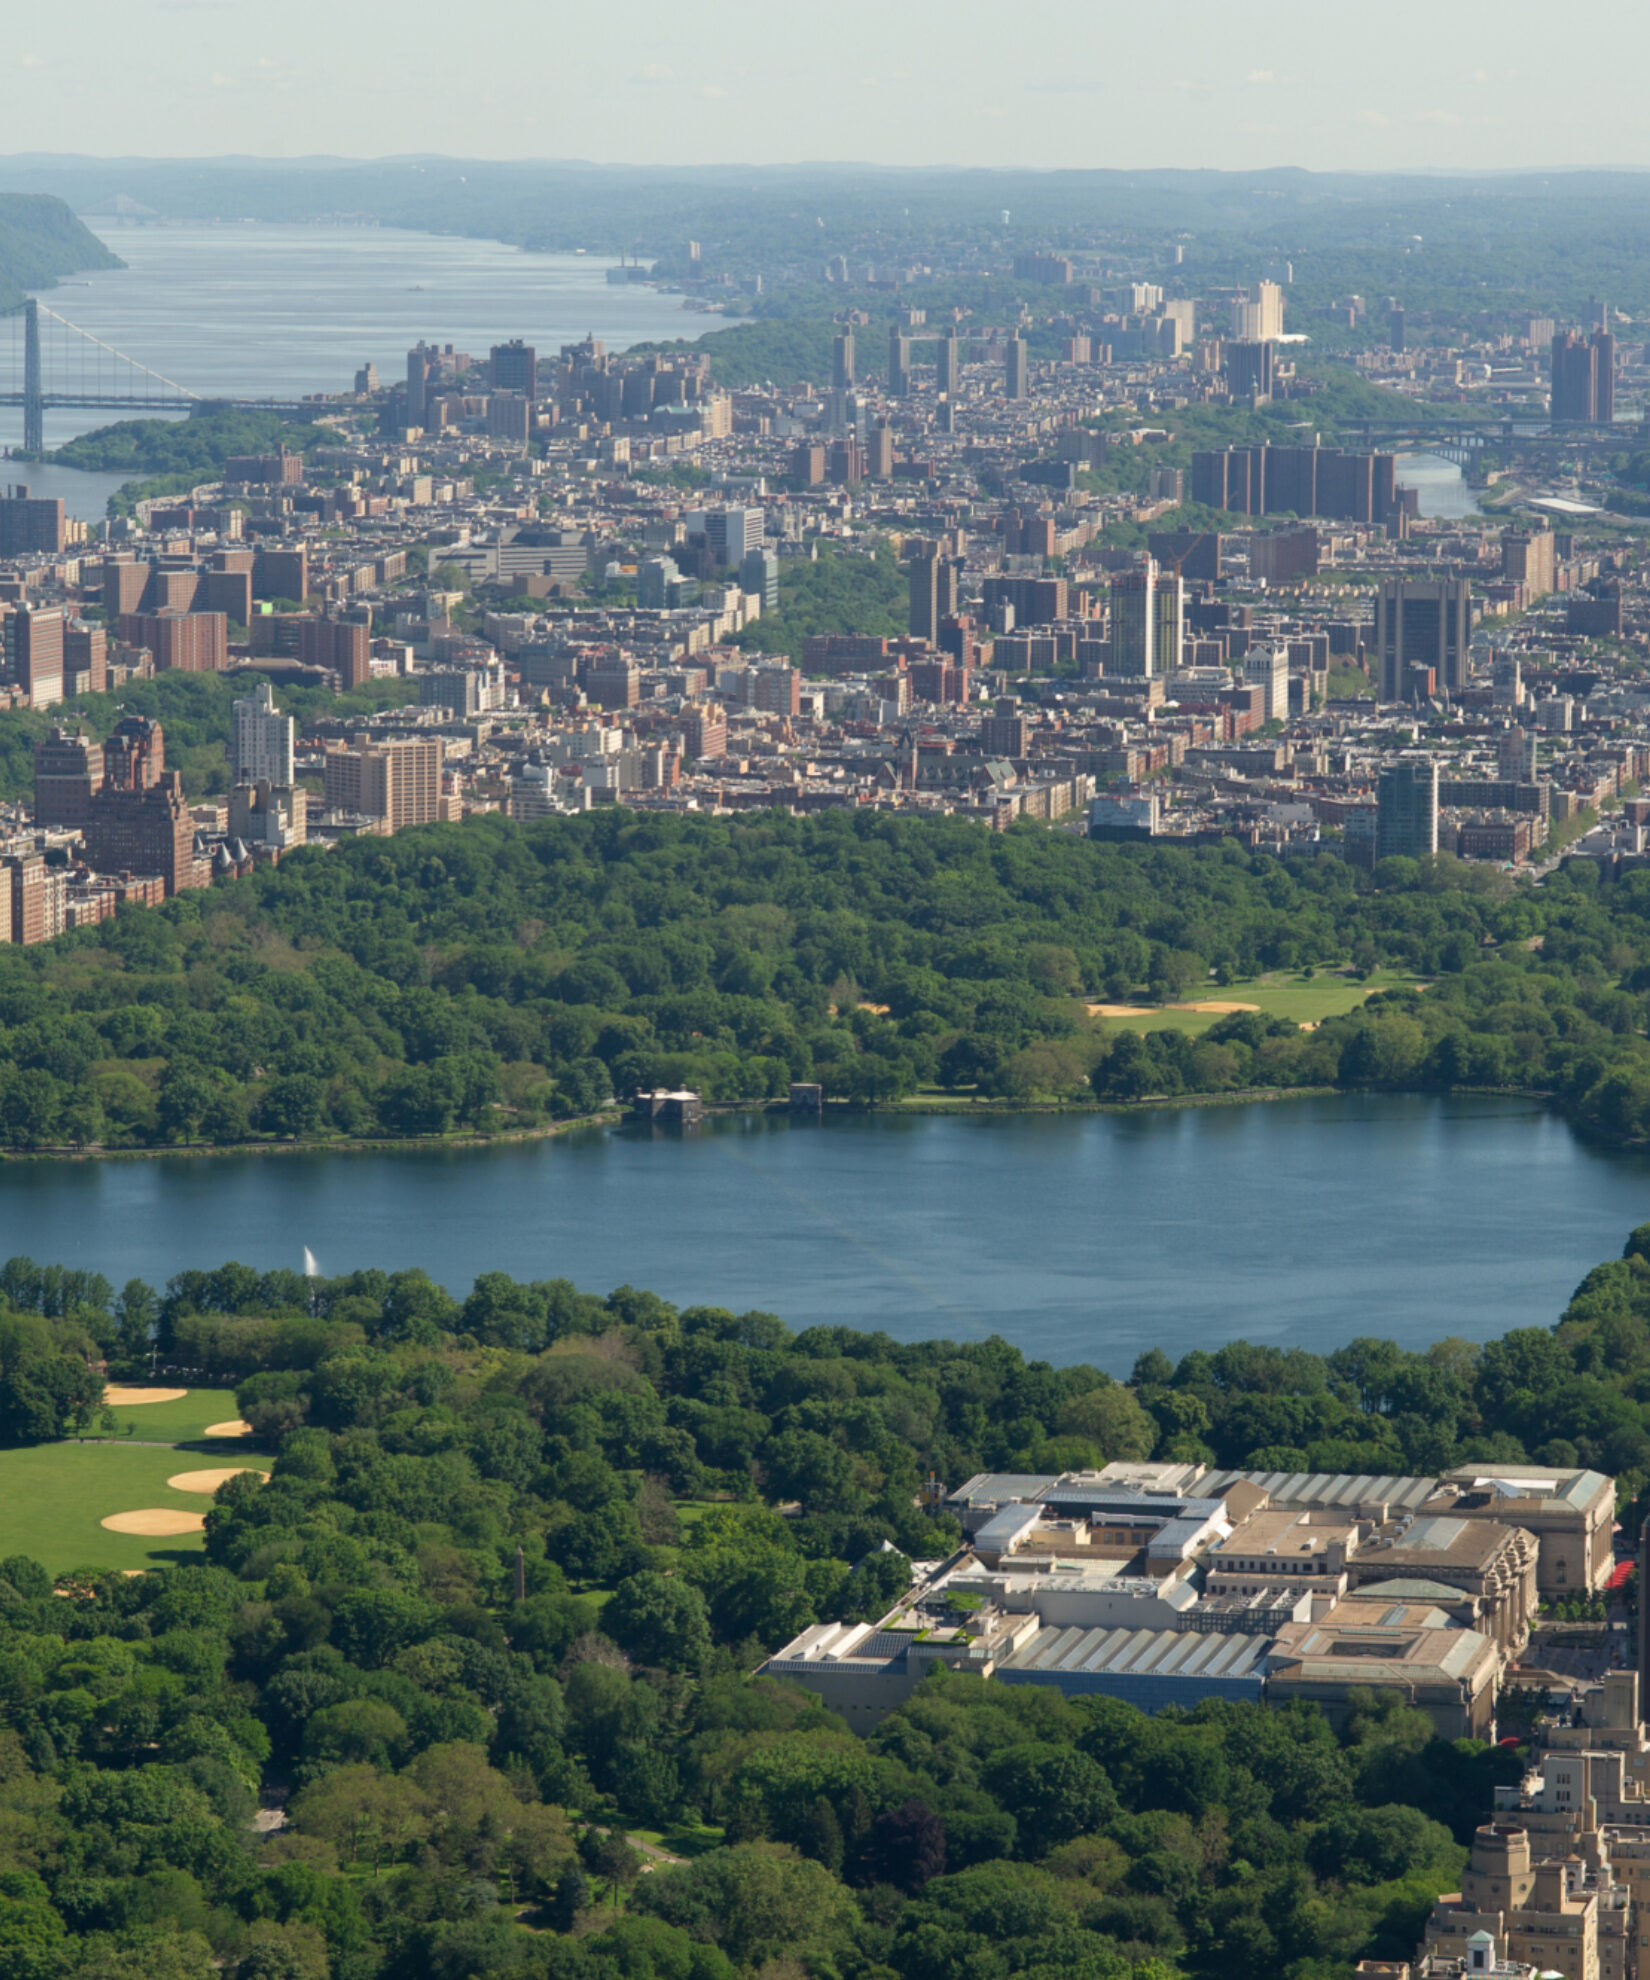 Aerial shot of the Reservoir in Central Park